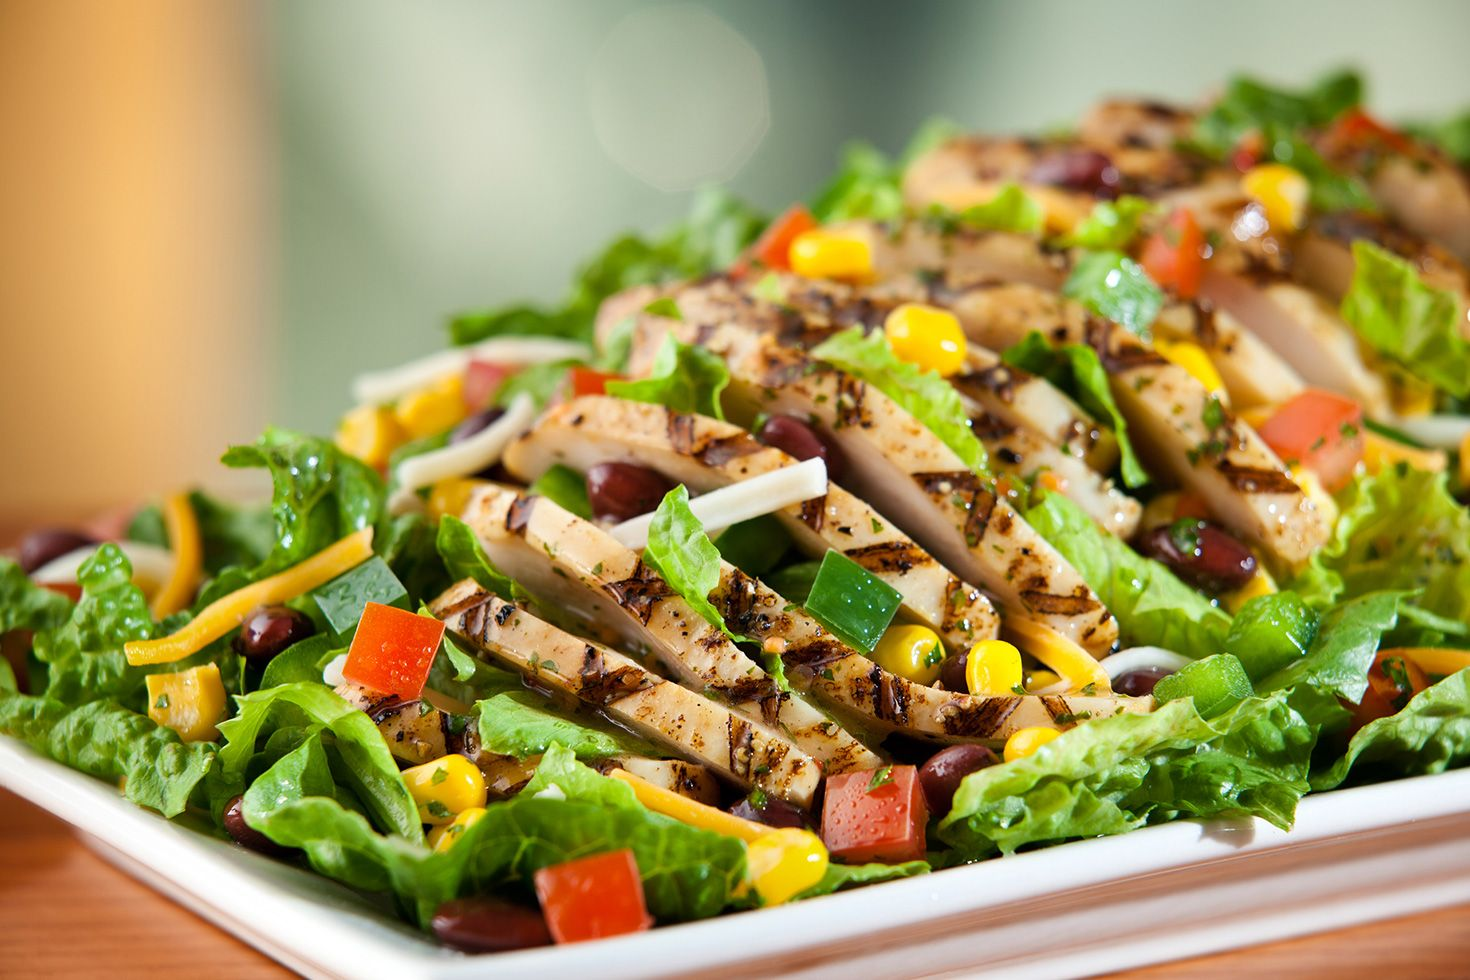 chili's guiltless grill grilled chicken salad